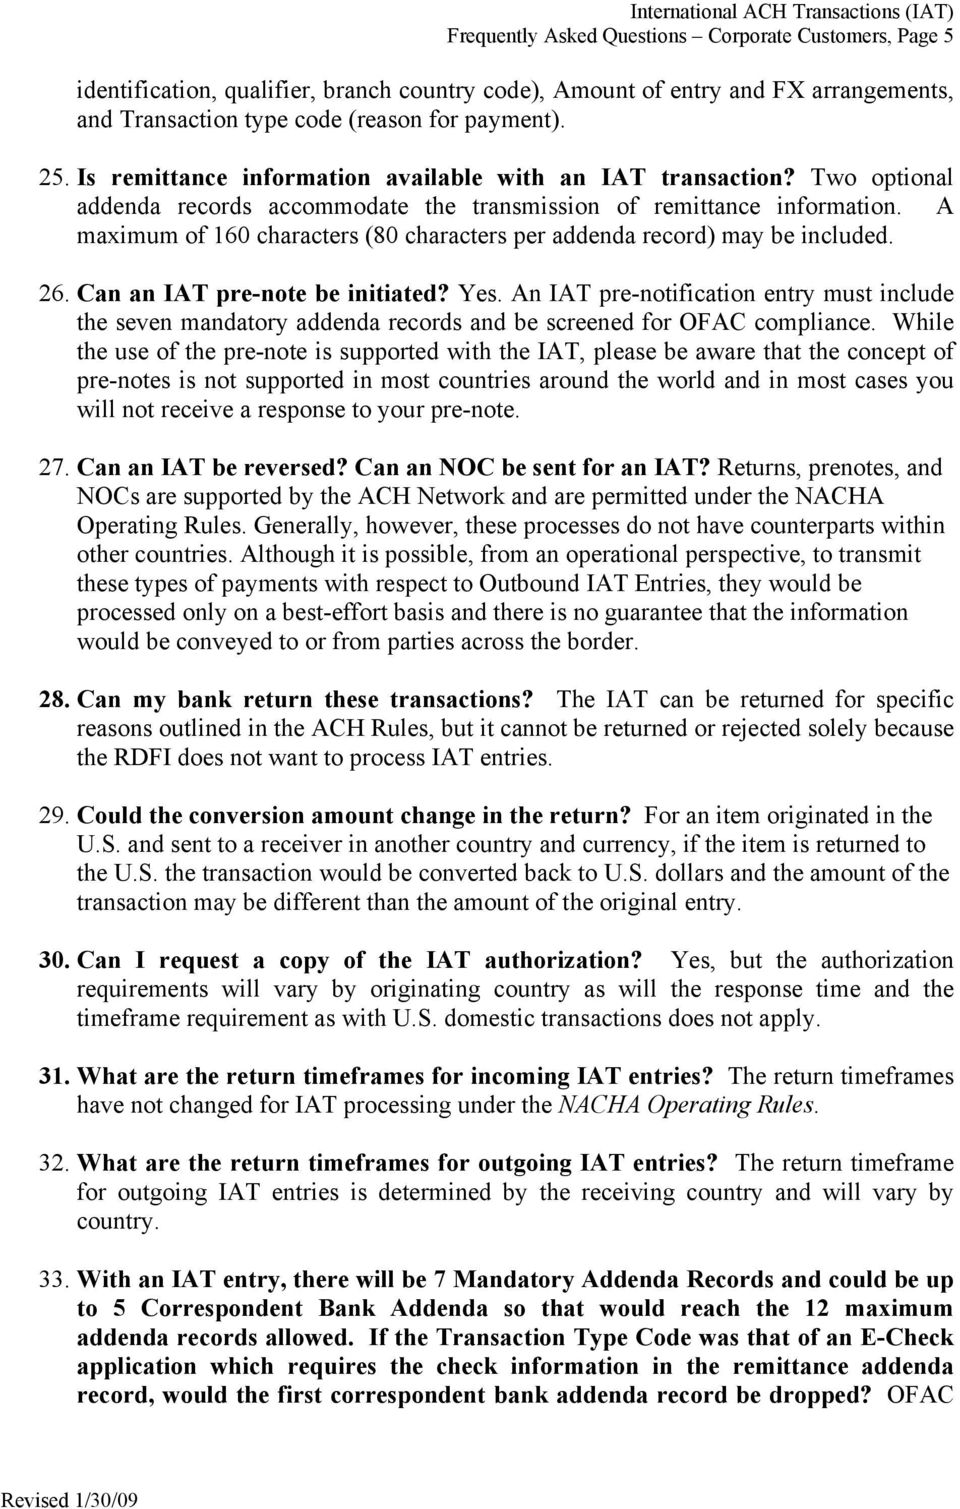 International ACH Transactions (IAT) Frequently Asked Questions ...